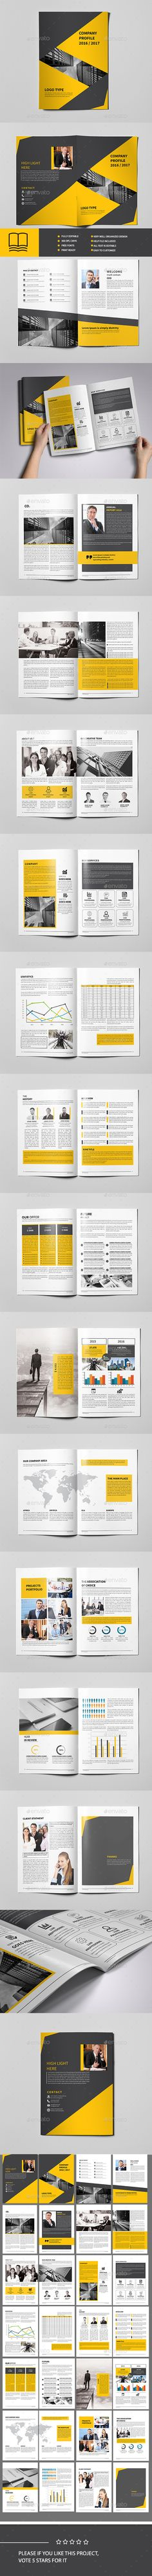 Corporate Business Brochure 28 Pages A4 Template InDesign INDD. Download here: https://graphicriver.net/item/corporate-business-brochure-28-pages-a4/16922597?ref=ksioks